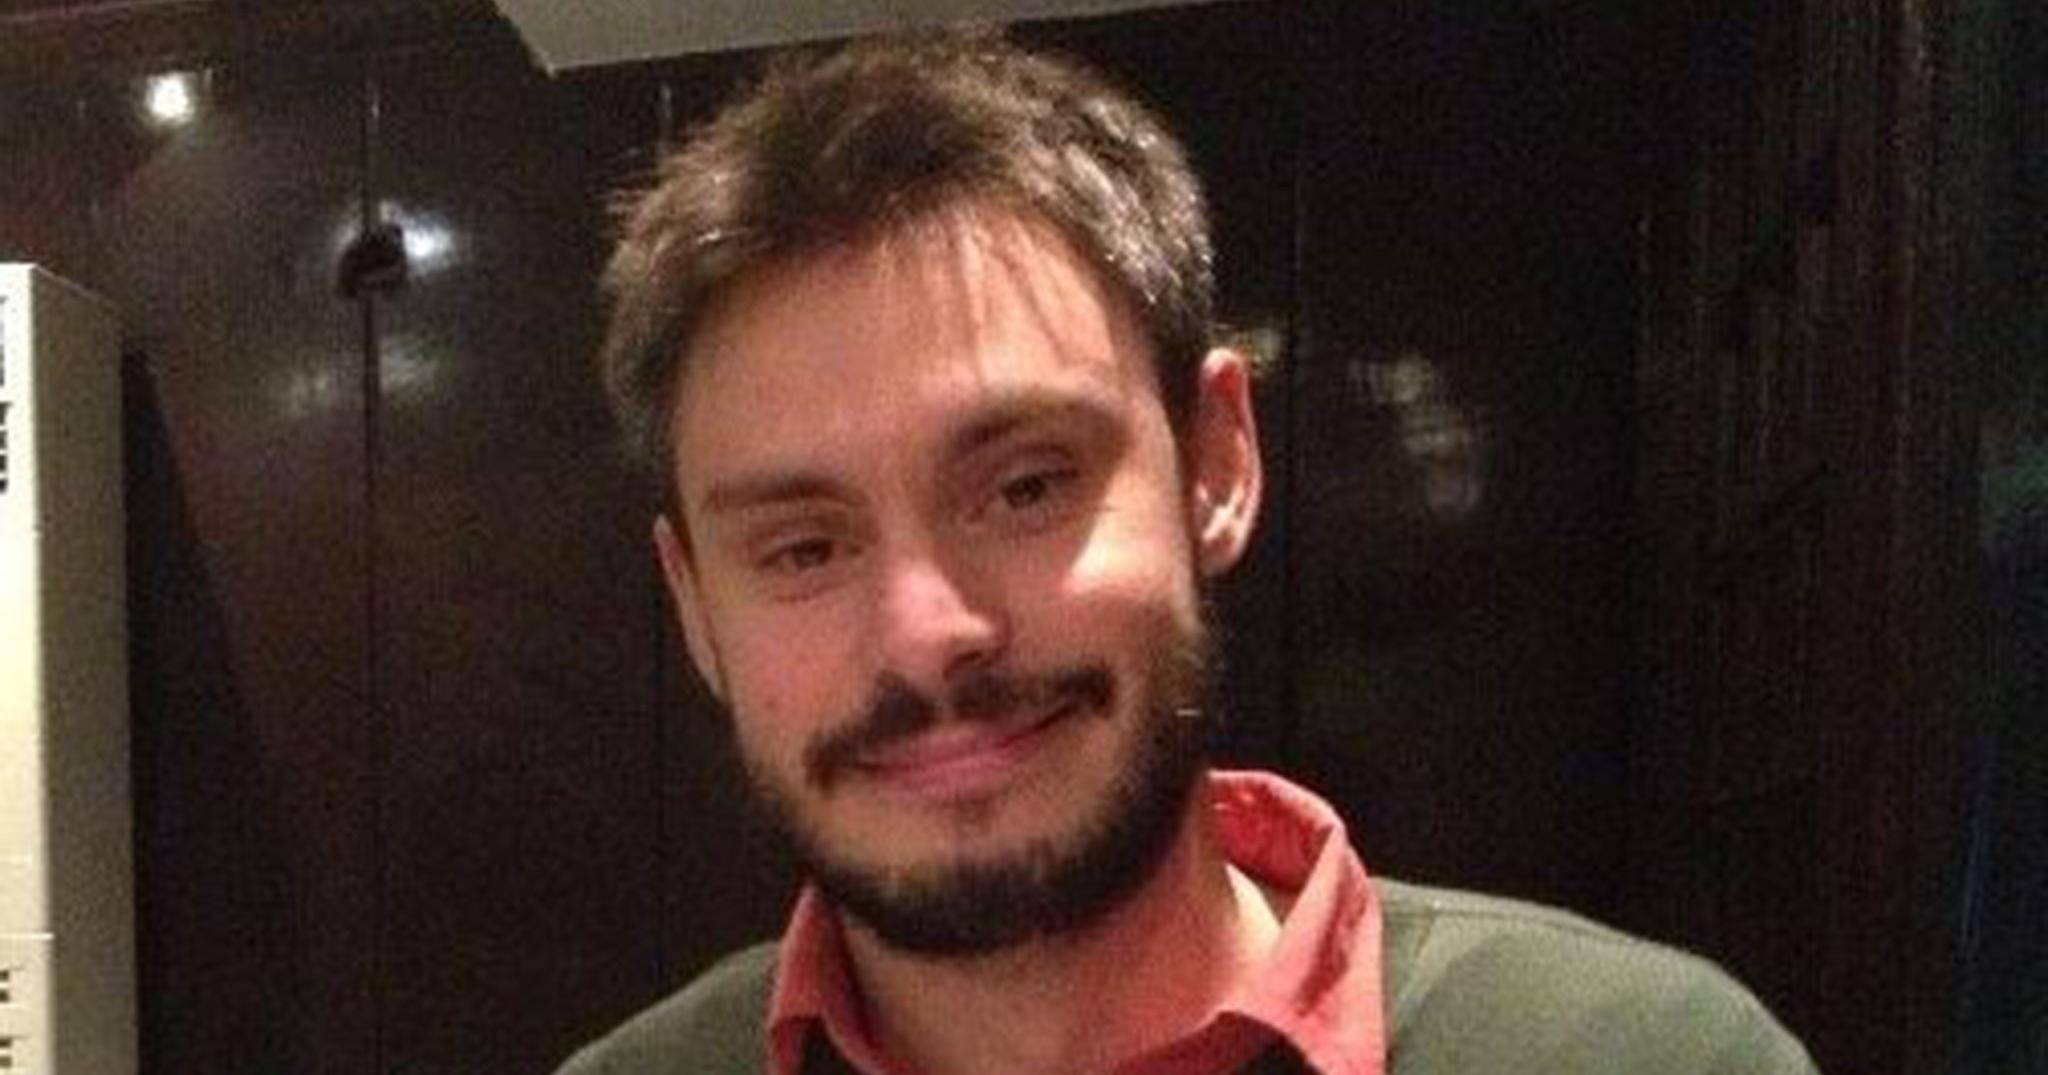 Regeni's body was found in Feburary 2016